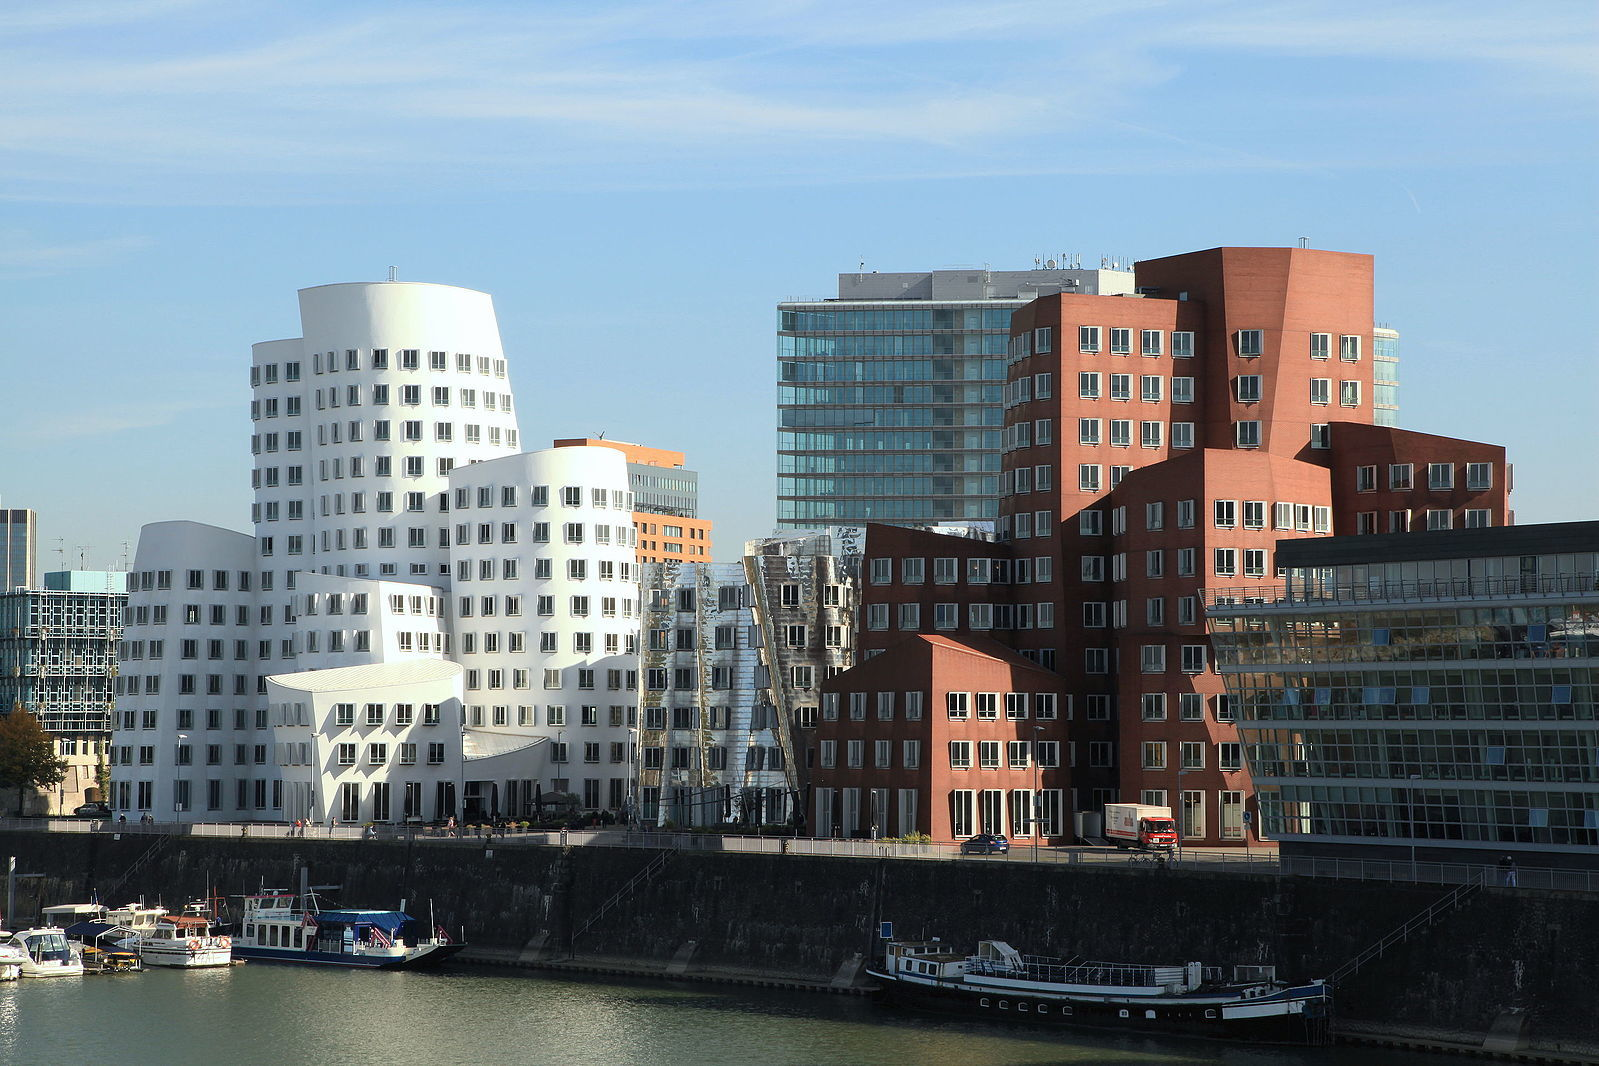 Neue Zollhof, the Gehry Buildings